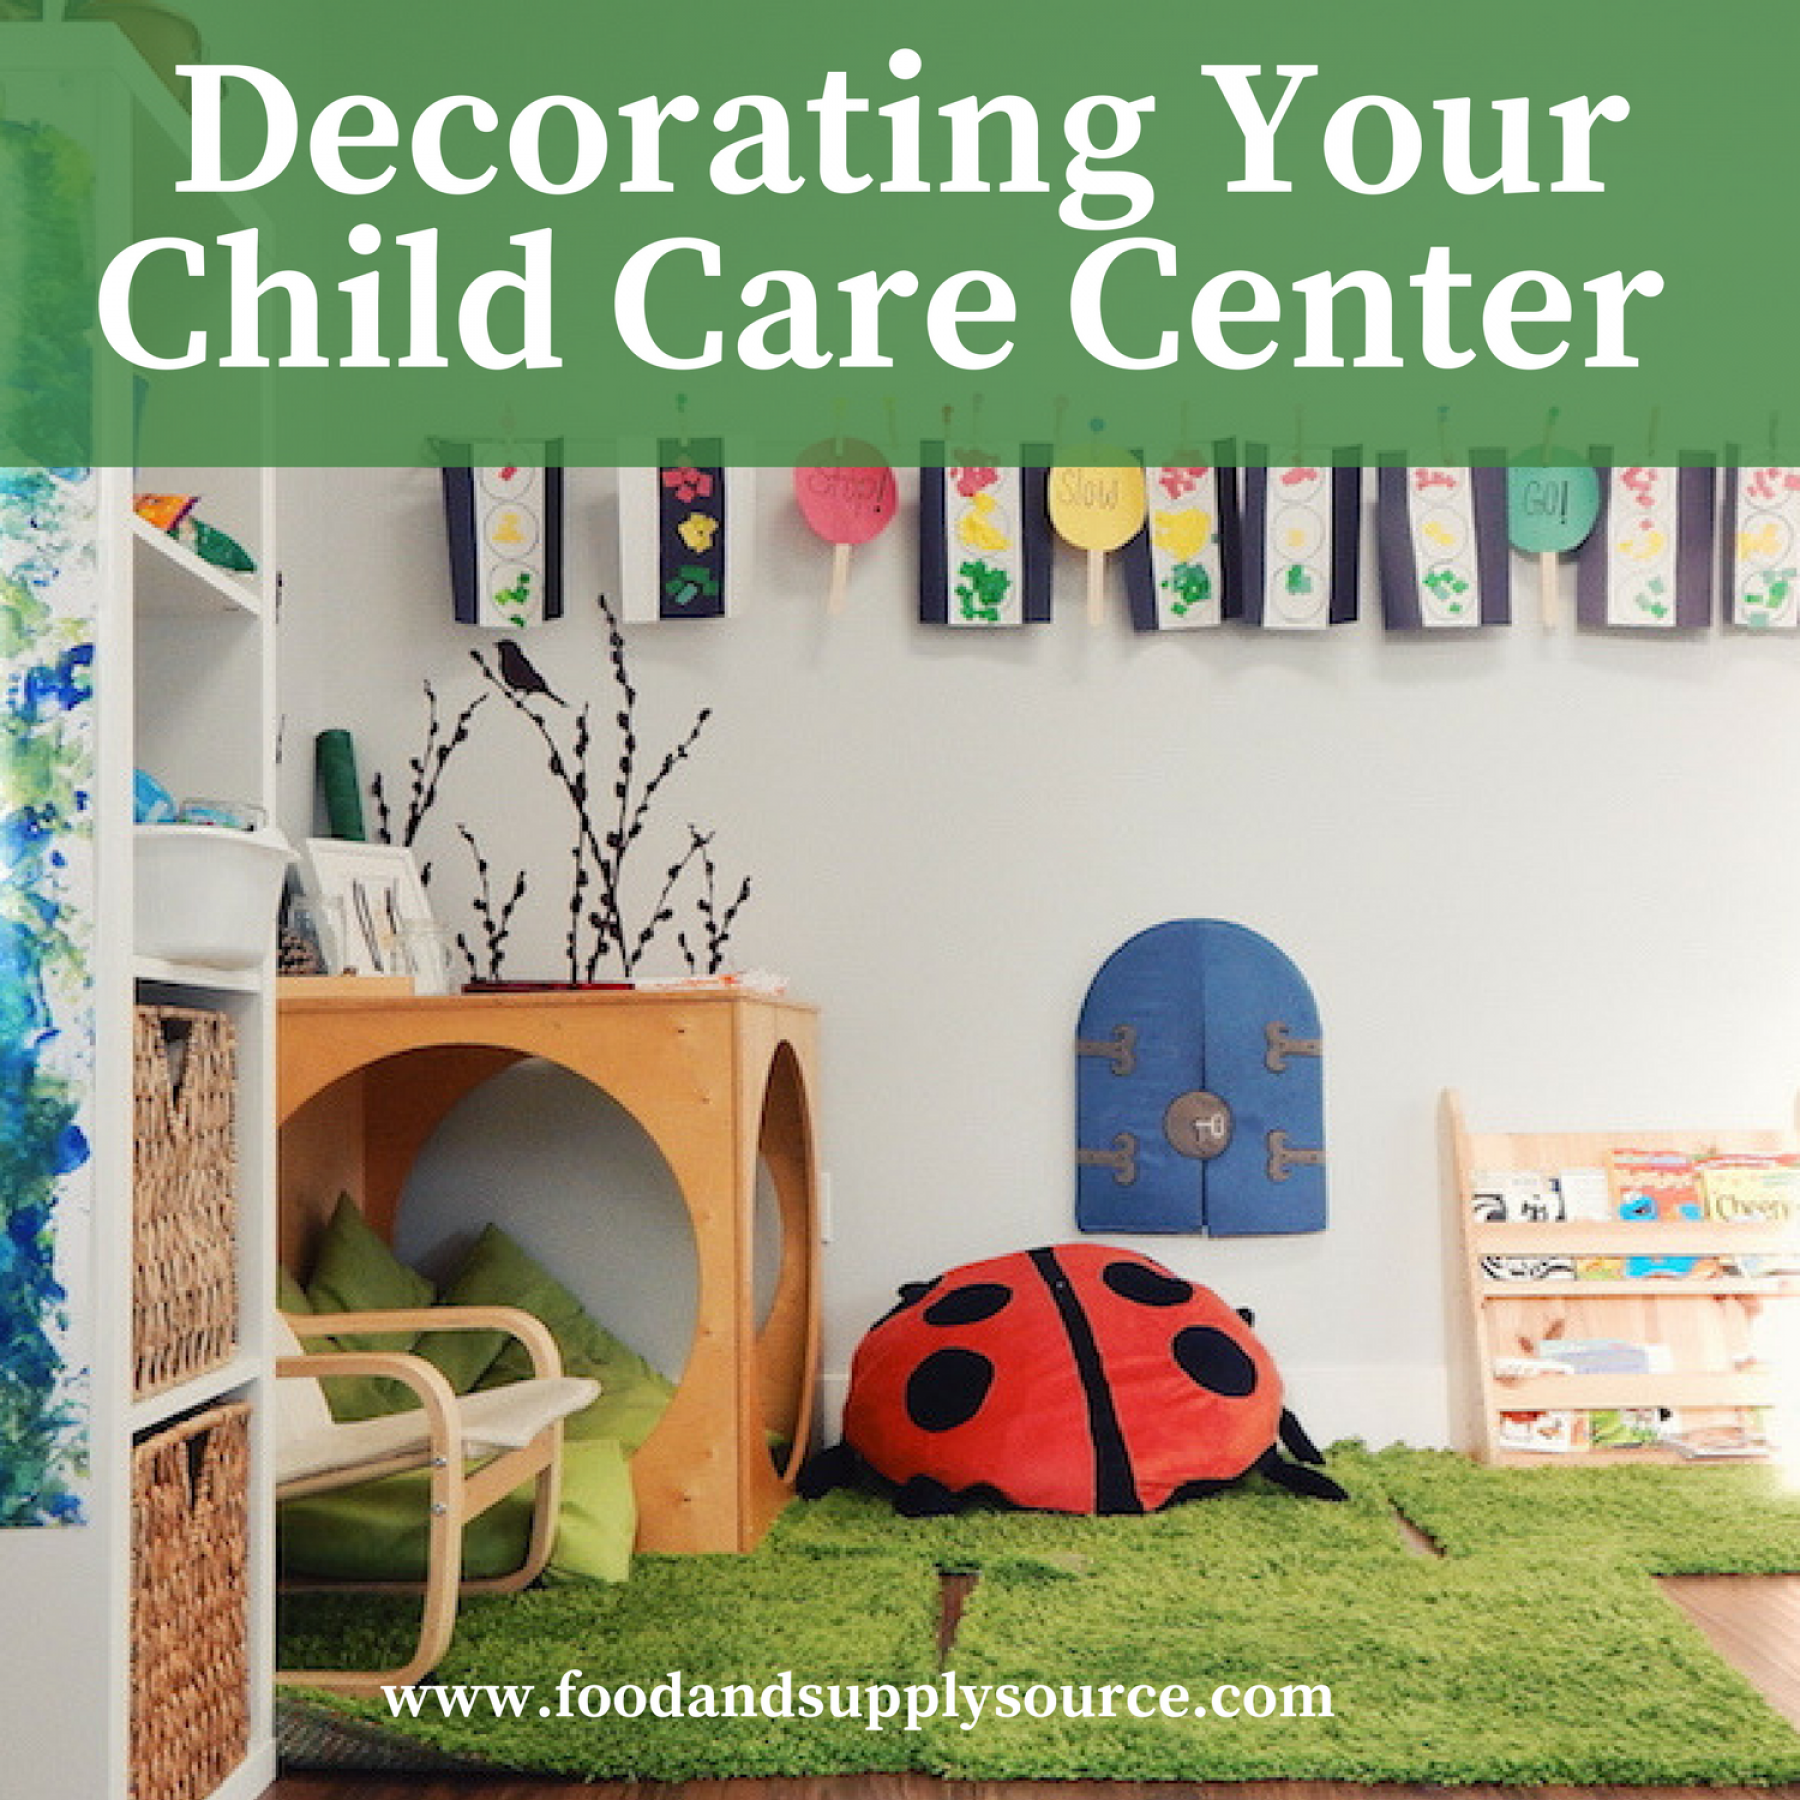 How to Decorate Your Child Care Center Food Supply Source